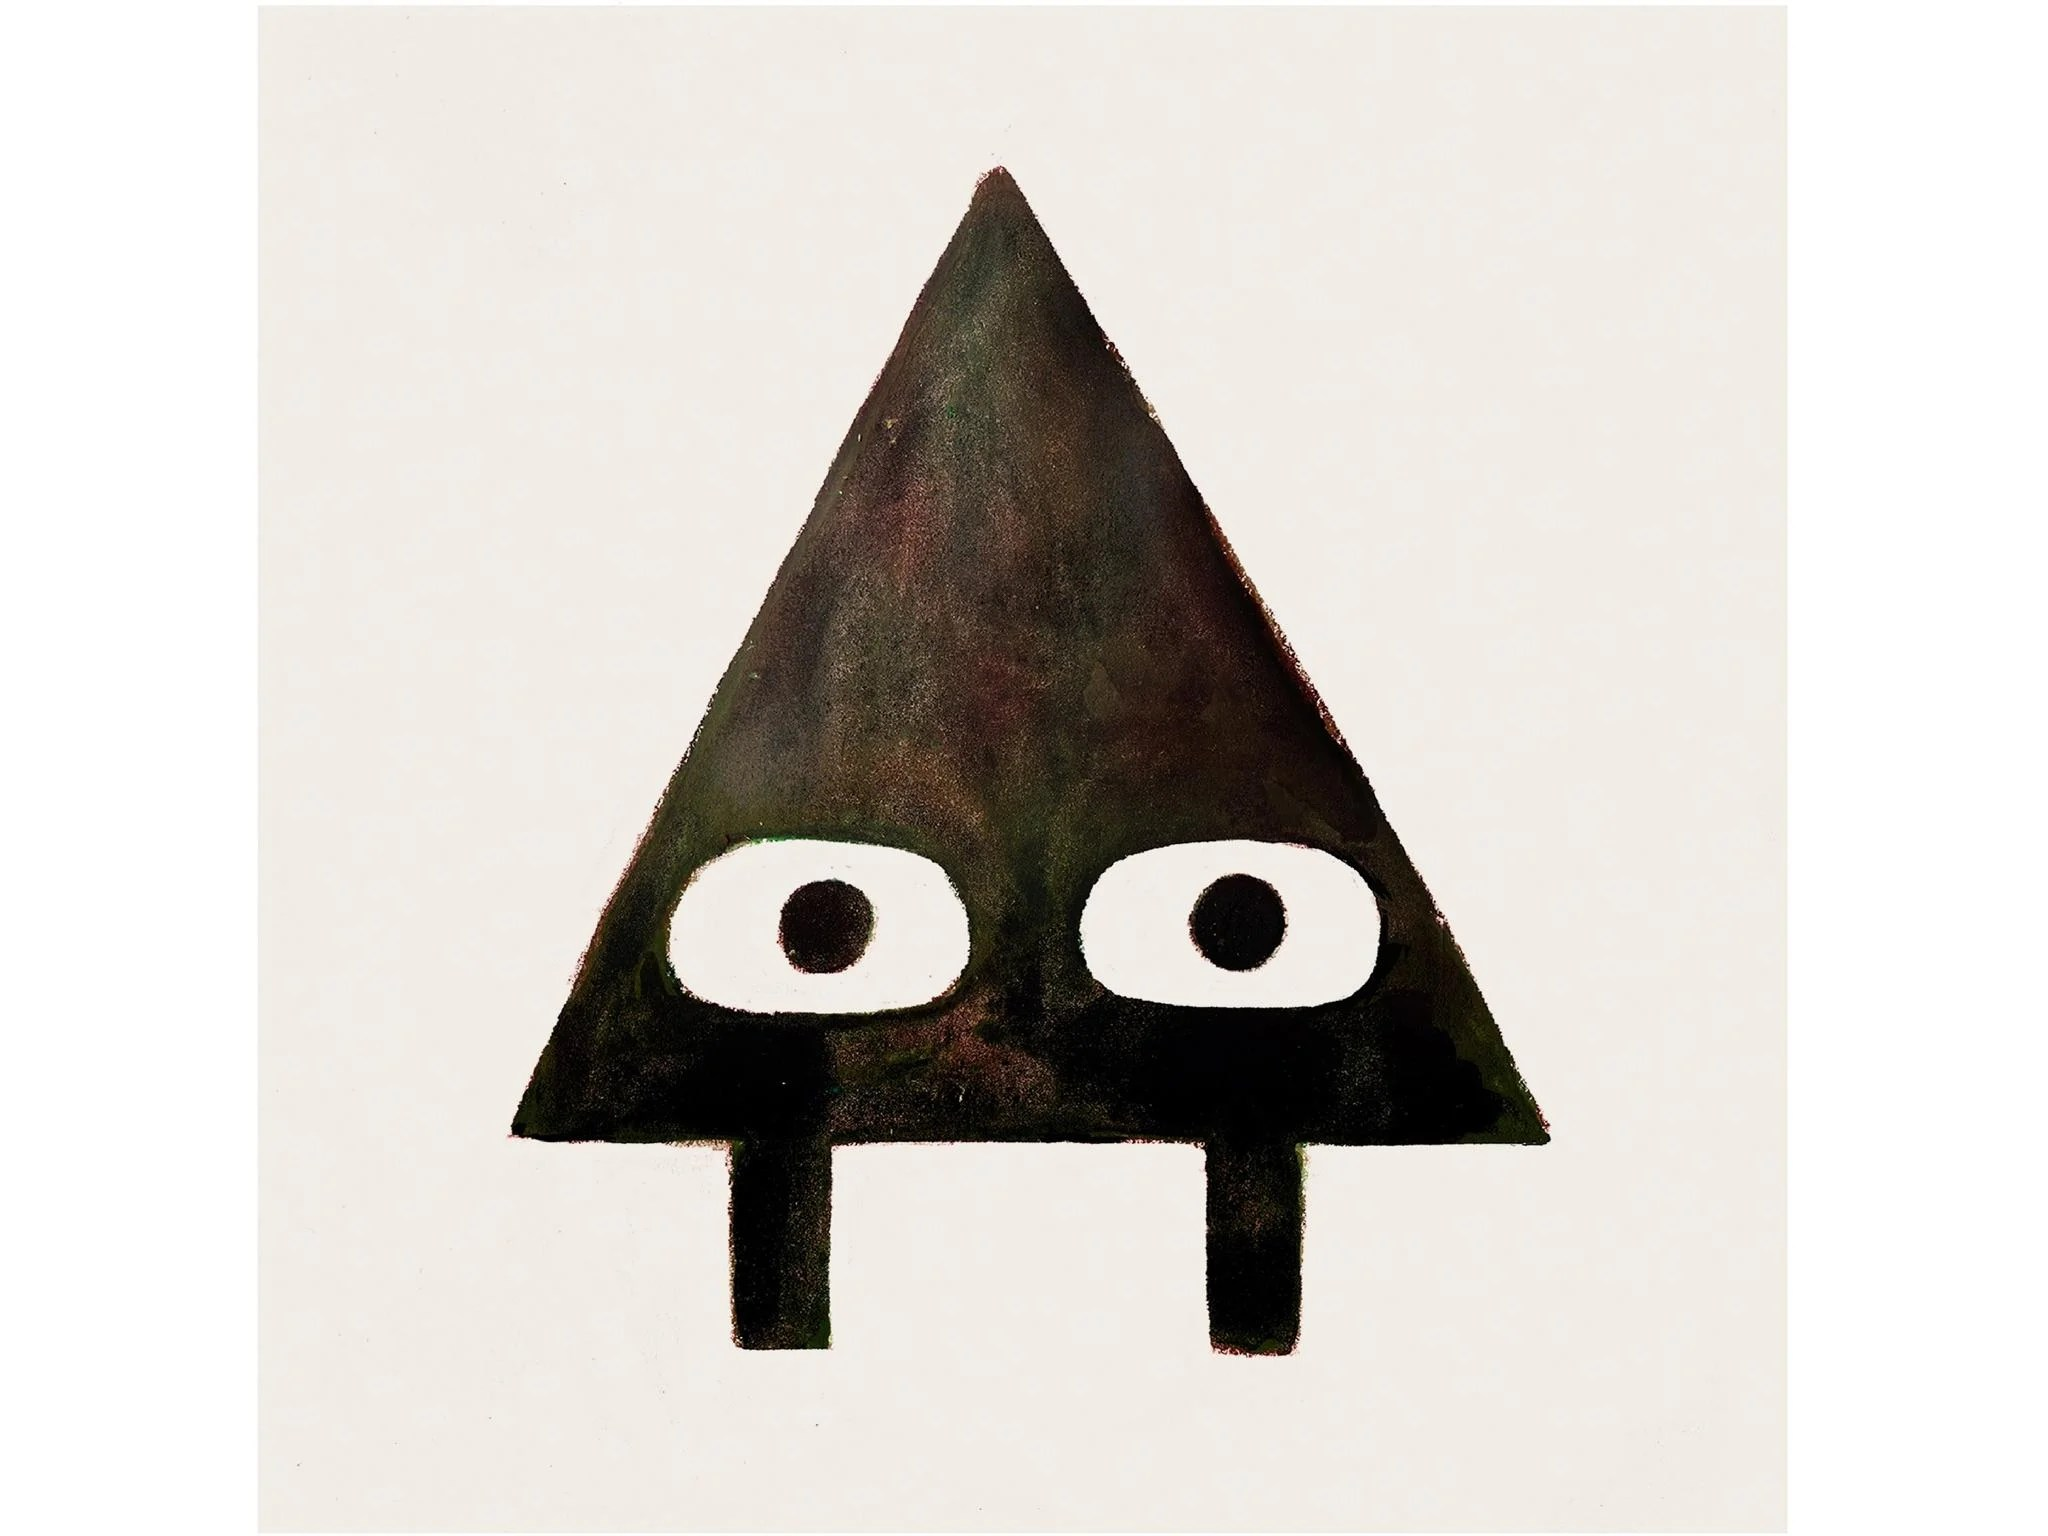 Triangle, The Anti-Hero Of This Entertaining Tale By Mac Barnett And Jon  Klassen, Is A Mischievous Cove. He Likes To Play Tricks On His Friend  Square,